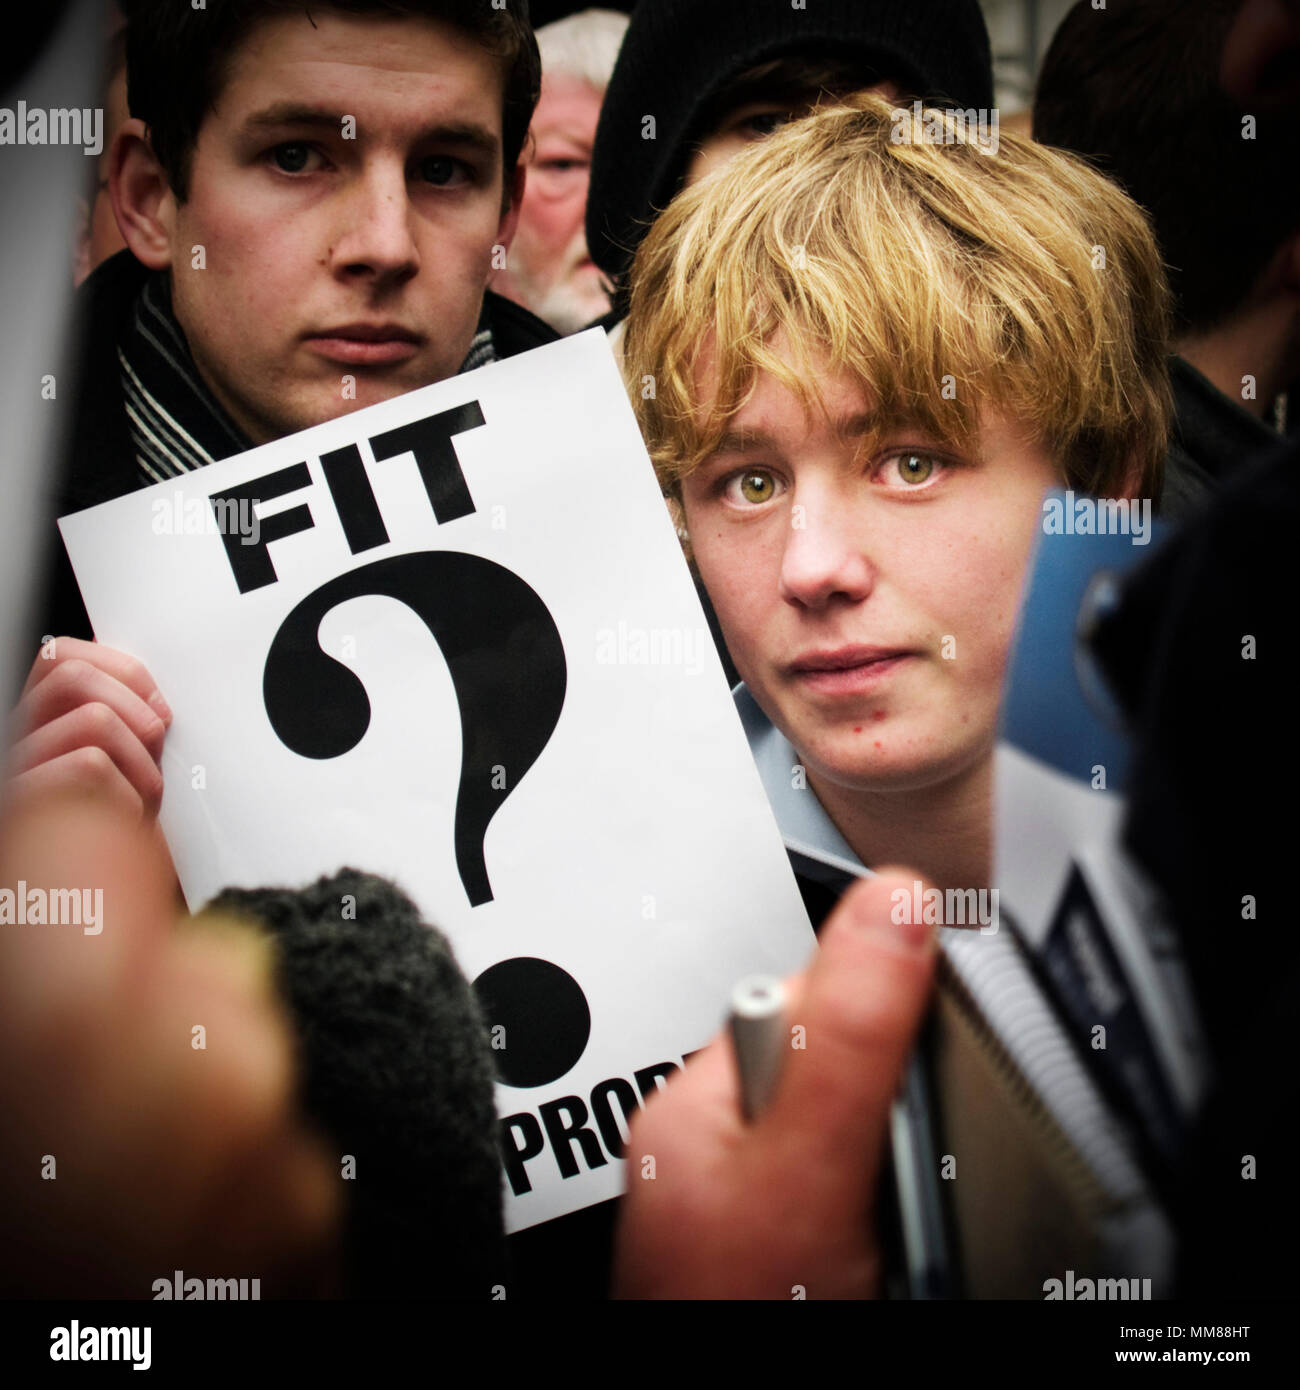 A young supported protests against the ownership of Portsmouth FC, questioning whether it passes the 'fit and proper' test that all new owners must pas under Premier League and Football League rules. The protest occured before Portsmouth played Sunderland AFC in the FA Cup 4th Round in 2010 - Stock Image